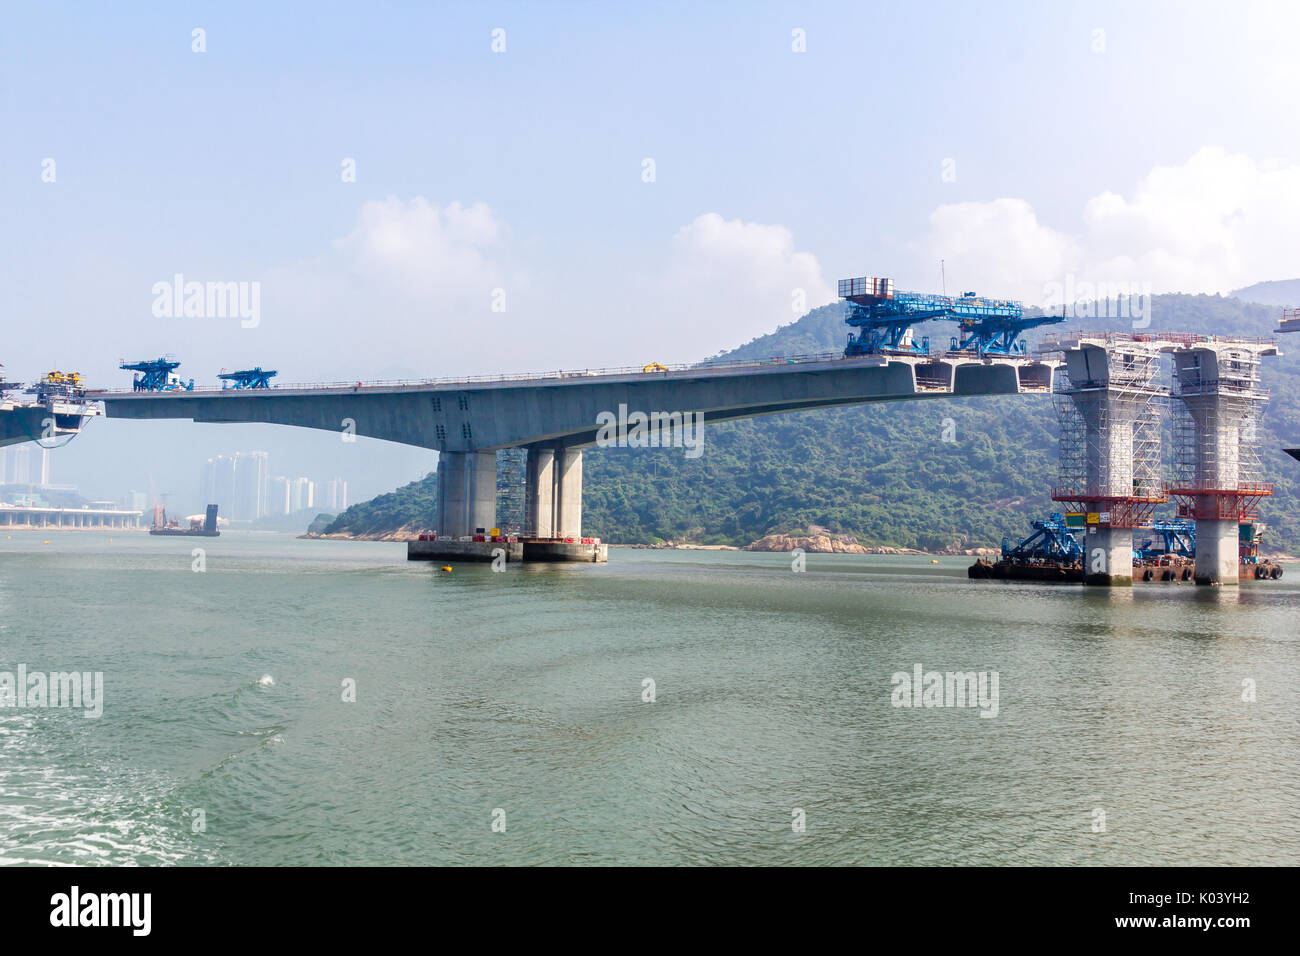 Hong Kong–Zhuhai–Macau Bridge ongoing construction project consisting of a series of bridges and tunnels crossing the Lingdingyang channel to connect  - Stock Image